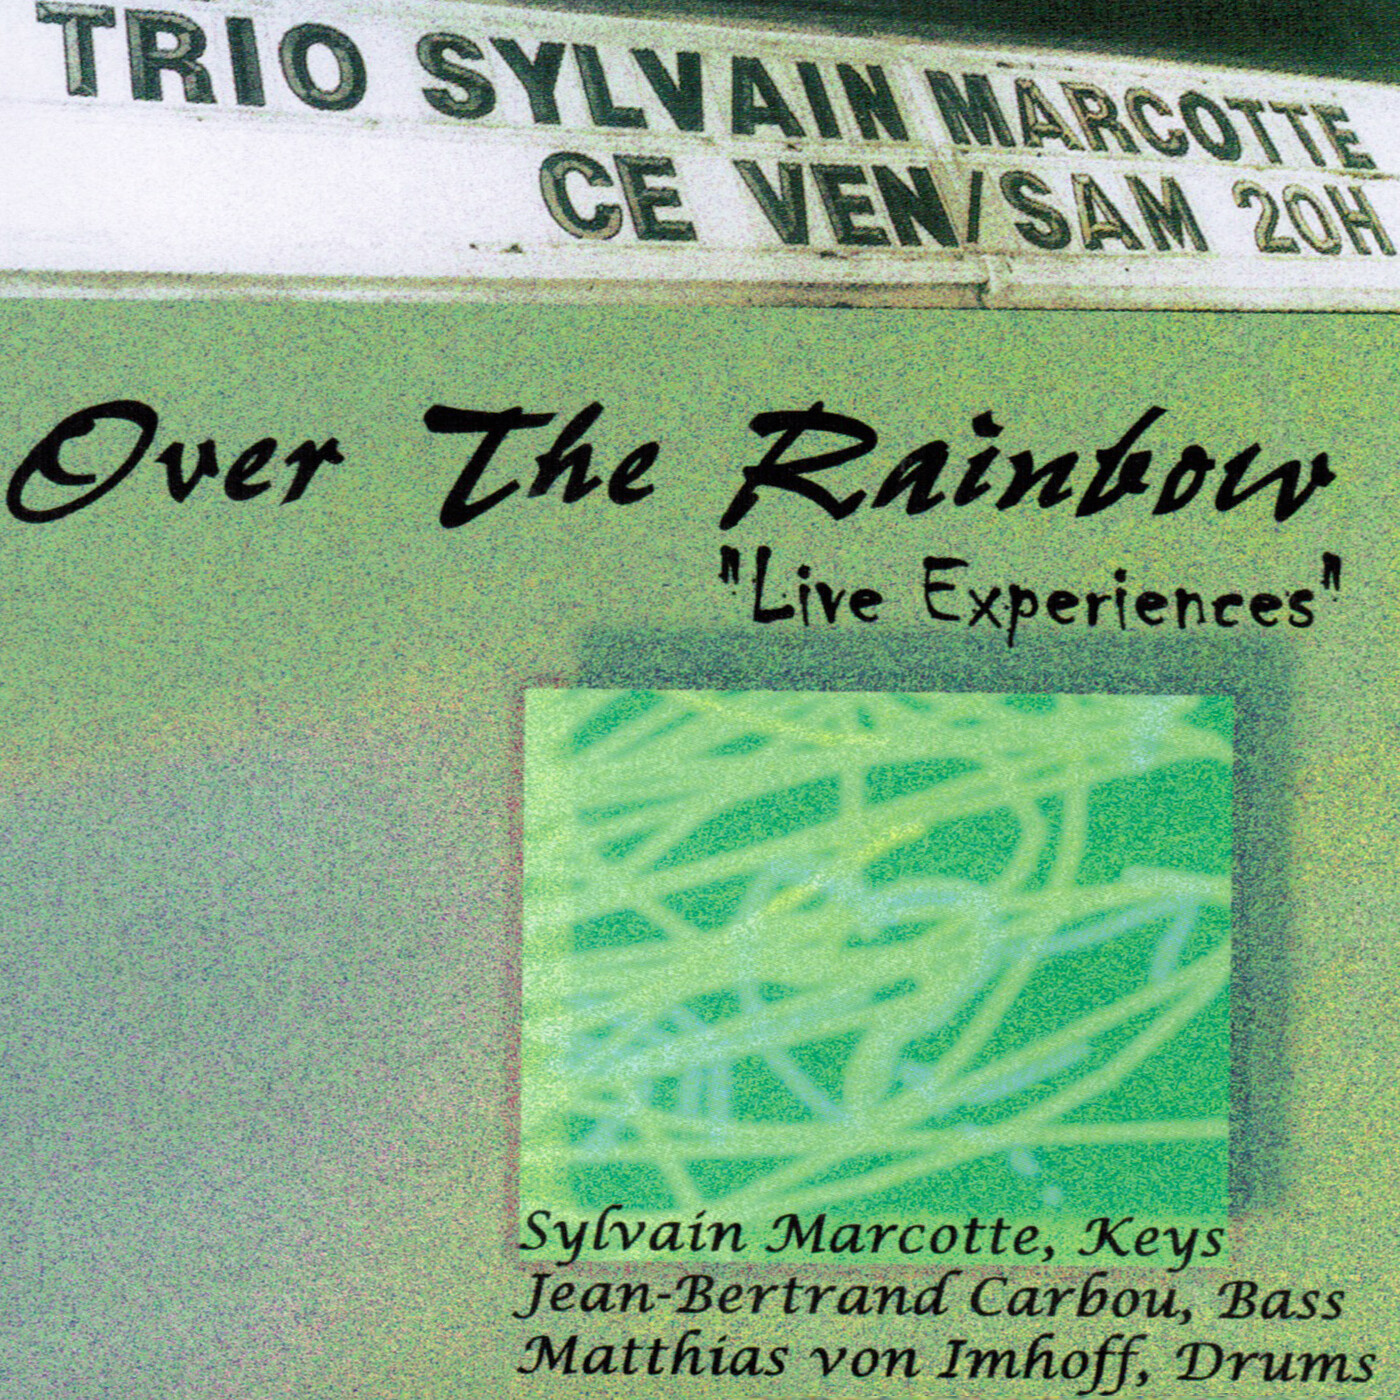 Over The Rainbow - Sylvain Marcotte Trio (Remastered)